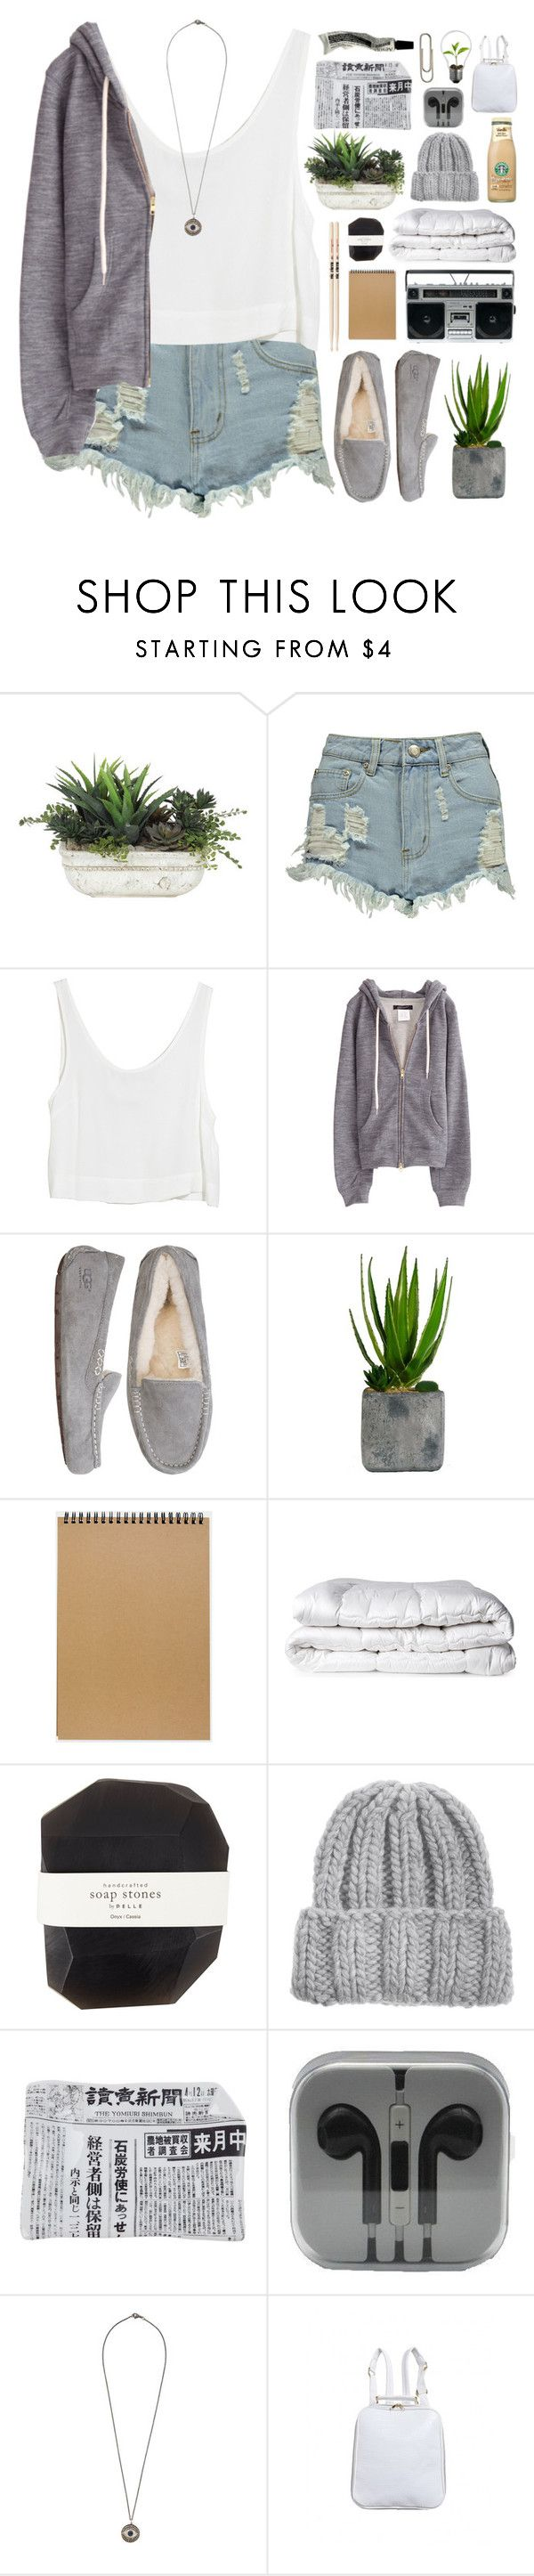 """""""lazy day"""" by innesdesigns ❤ liked on Polyvore featuring Lux-Art Silks, Boohoo, MINKPINK, UGG Australia, Laura Ashley, Muji, Firth, Brinkhaus, Pelle and KISS by Fiona Bennett"""